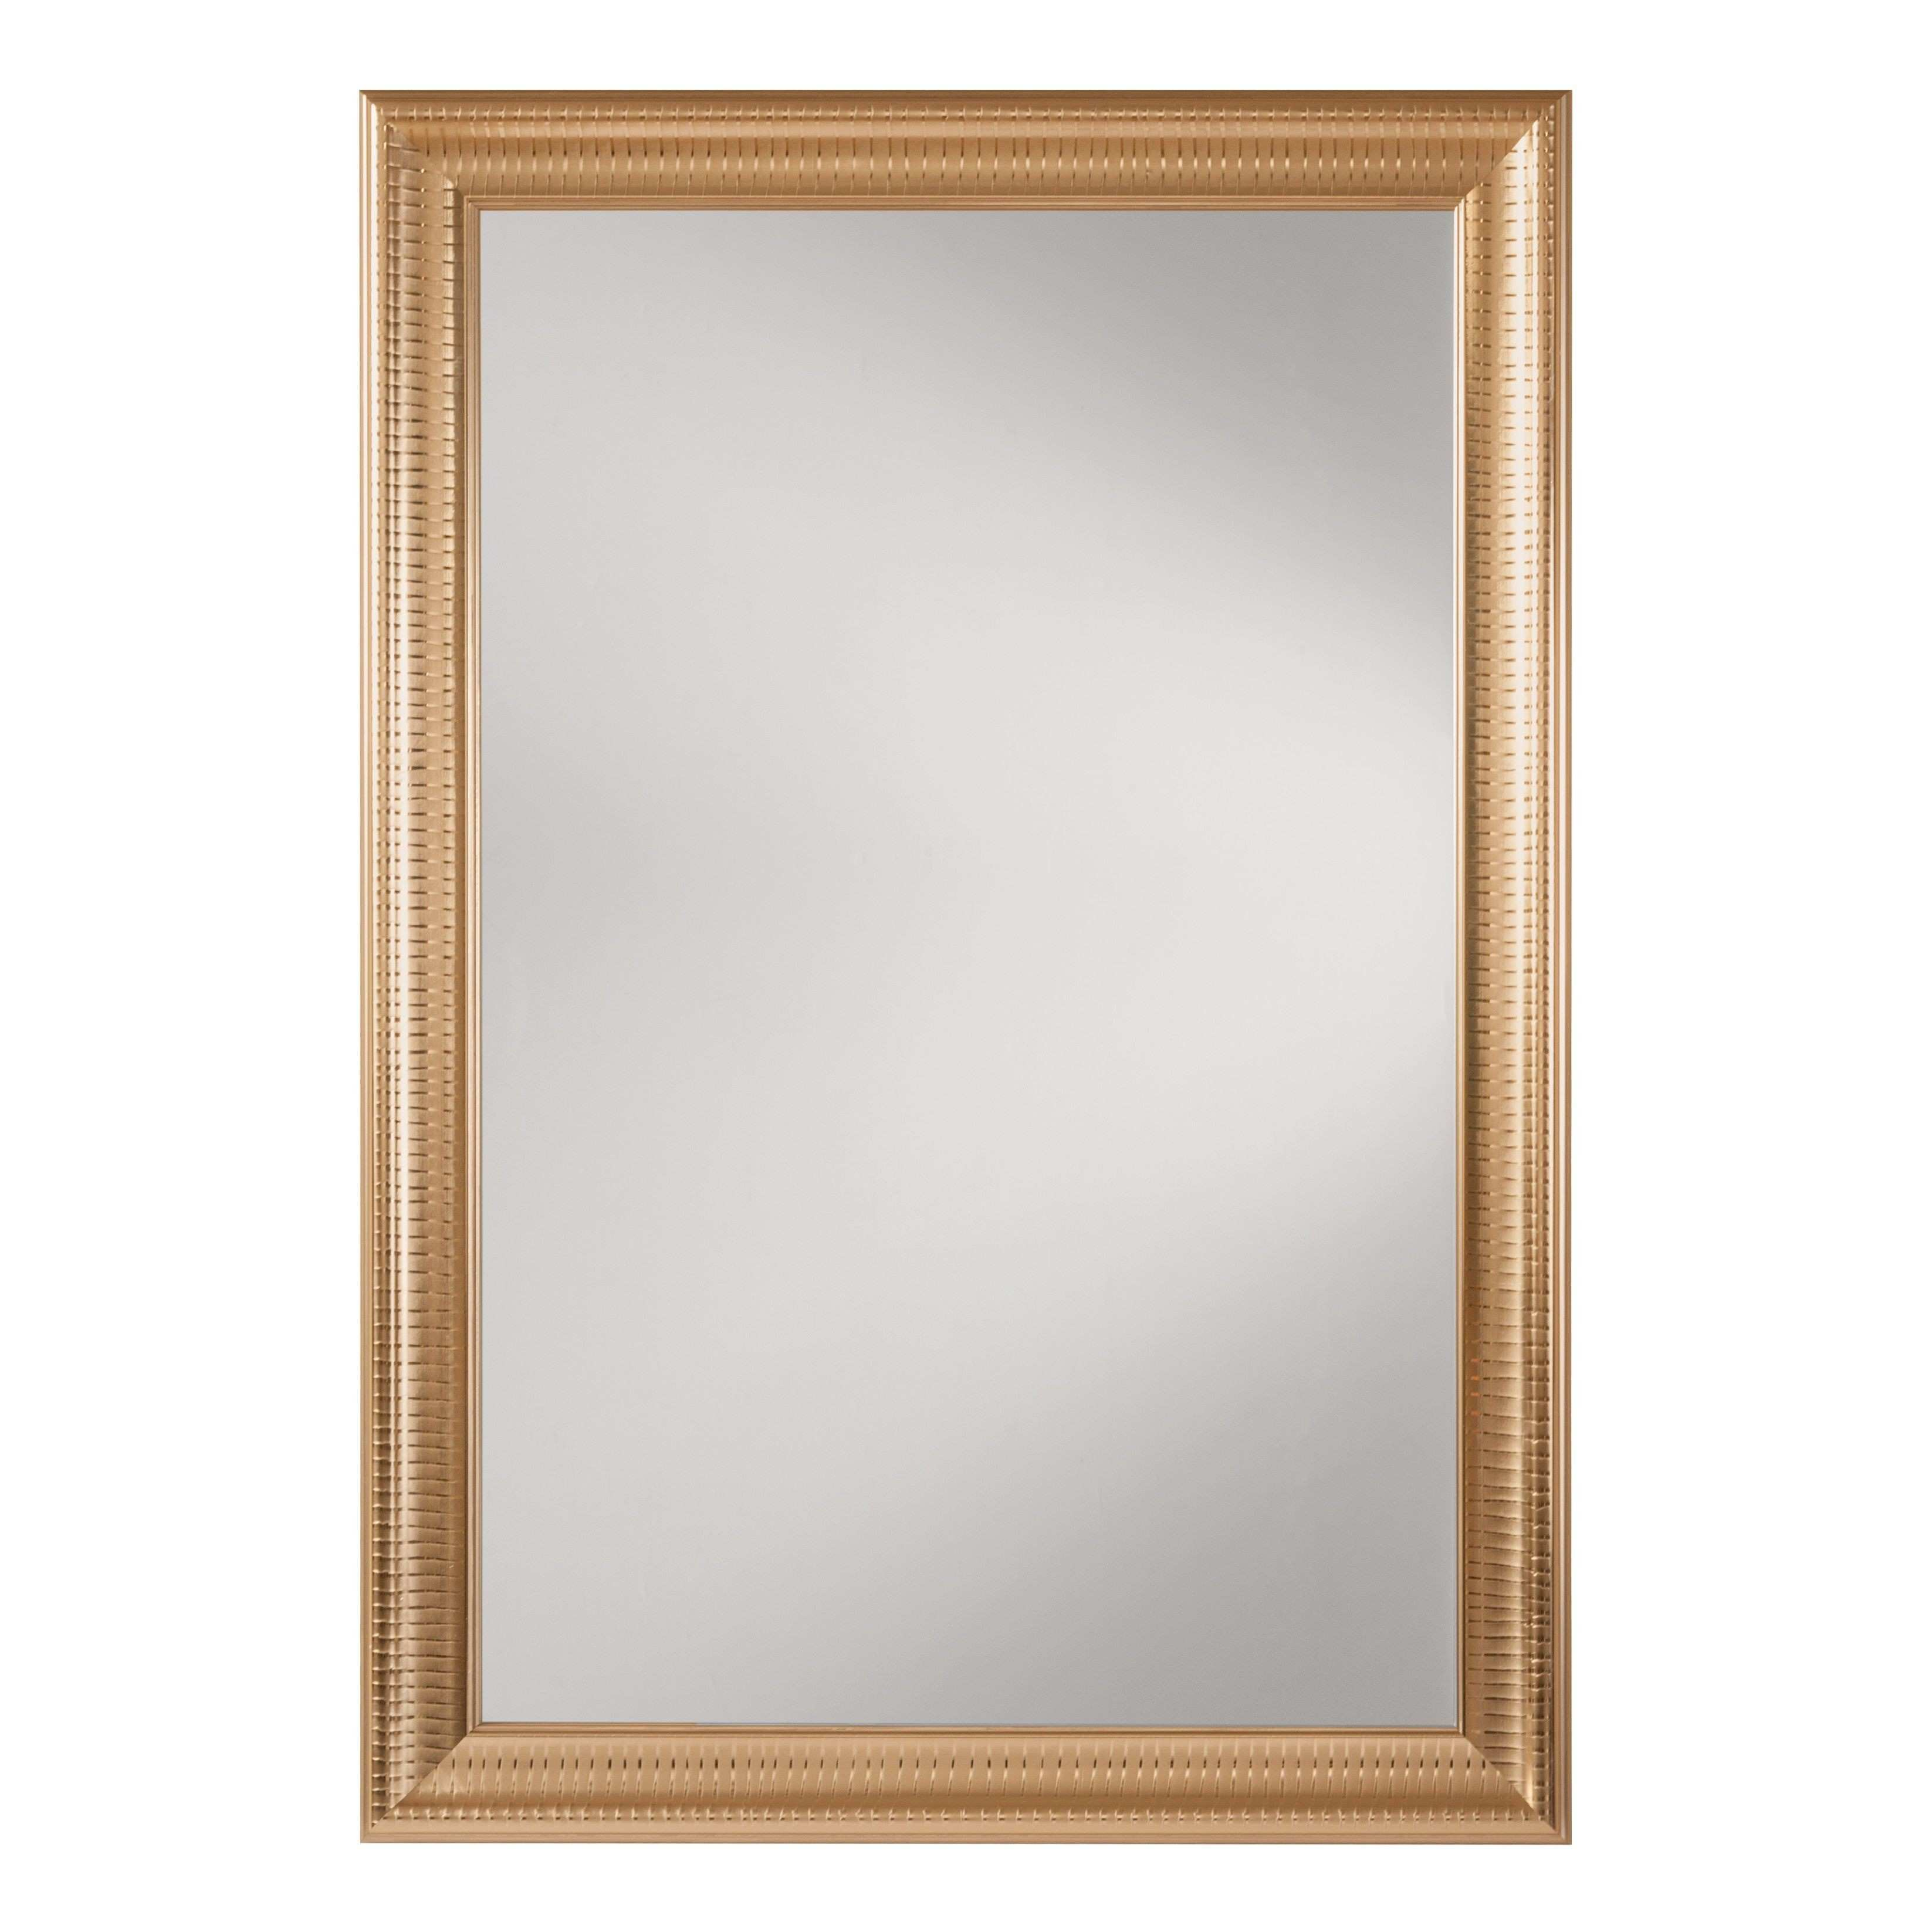 Gold Frame Bathroom Mirror Luxury Mirrors Wall Decor the Home Depot